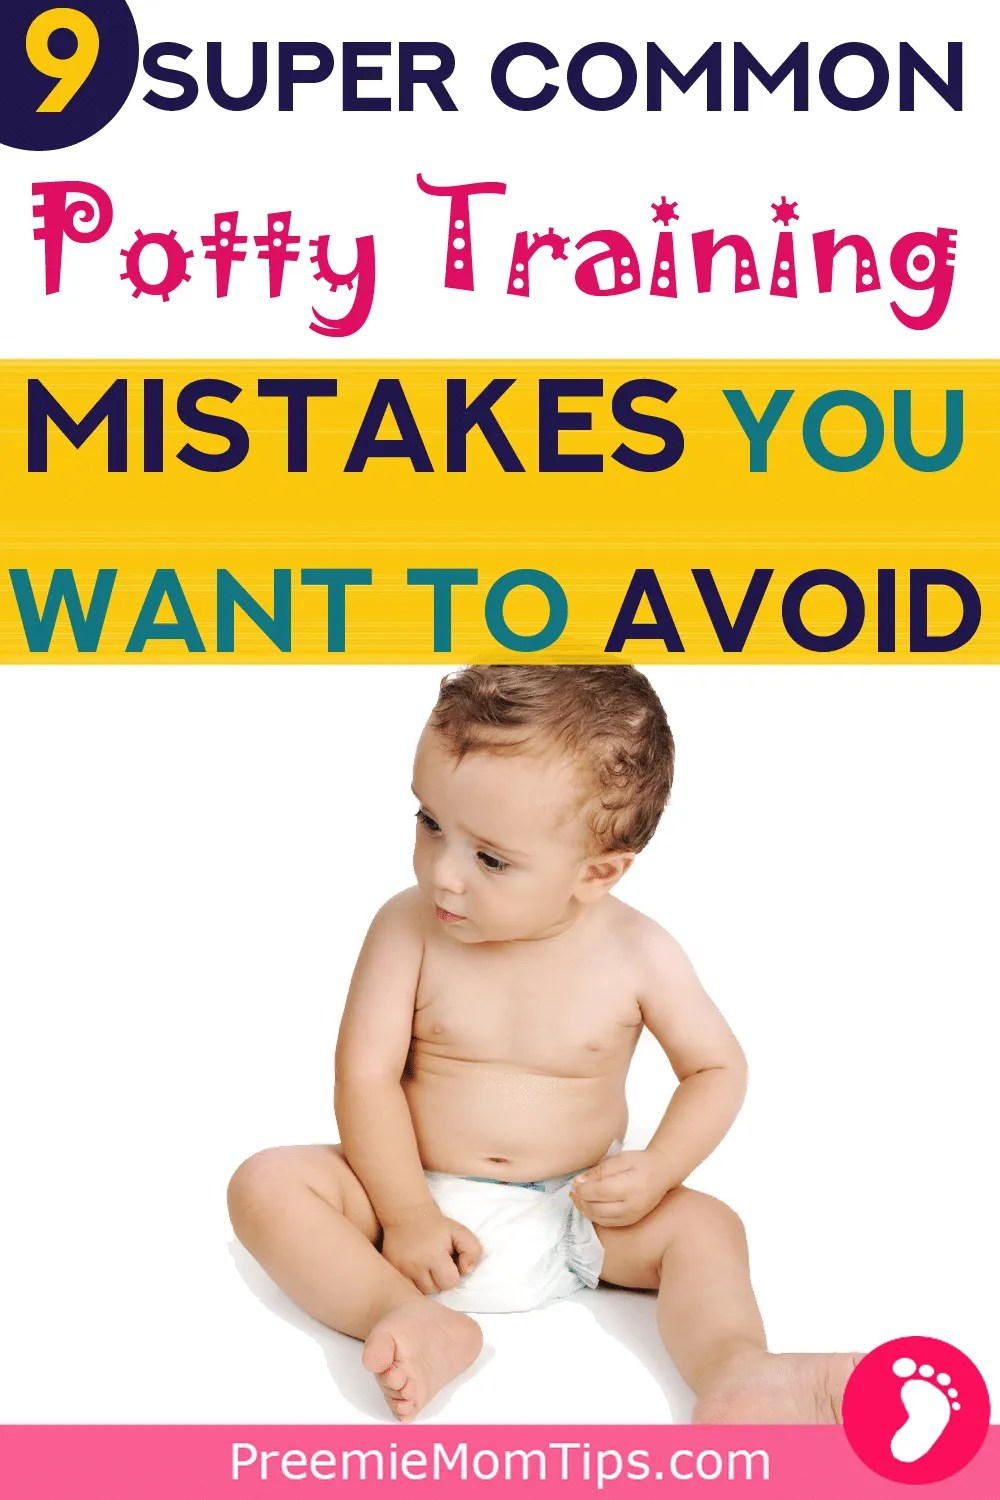 Potty train like a boss by avoiding these super common mistakes most parents make when potty training their toddlers